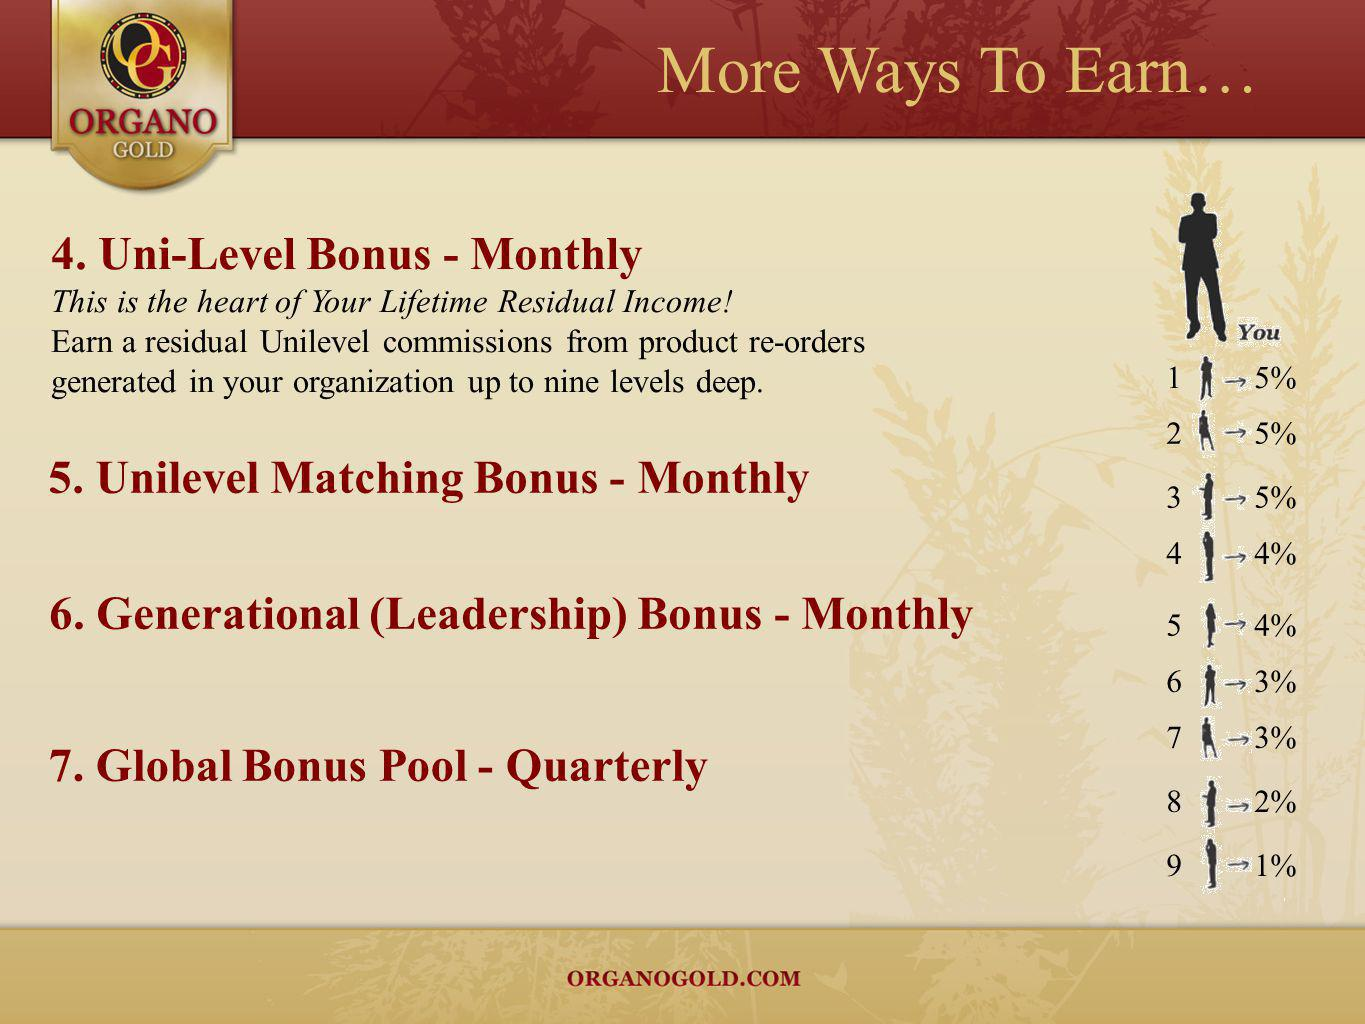 More Ways To Earn… 4. Uni-Level Bonus - Monthly